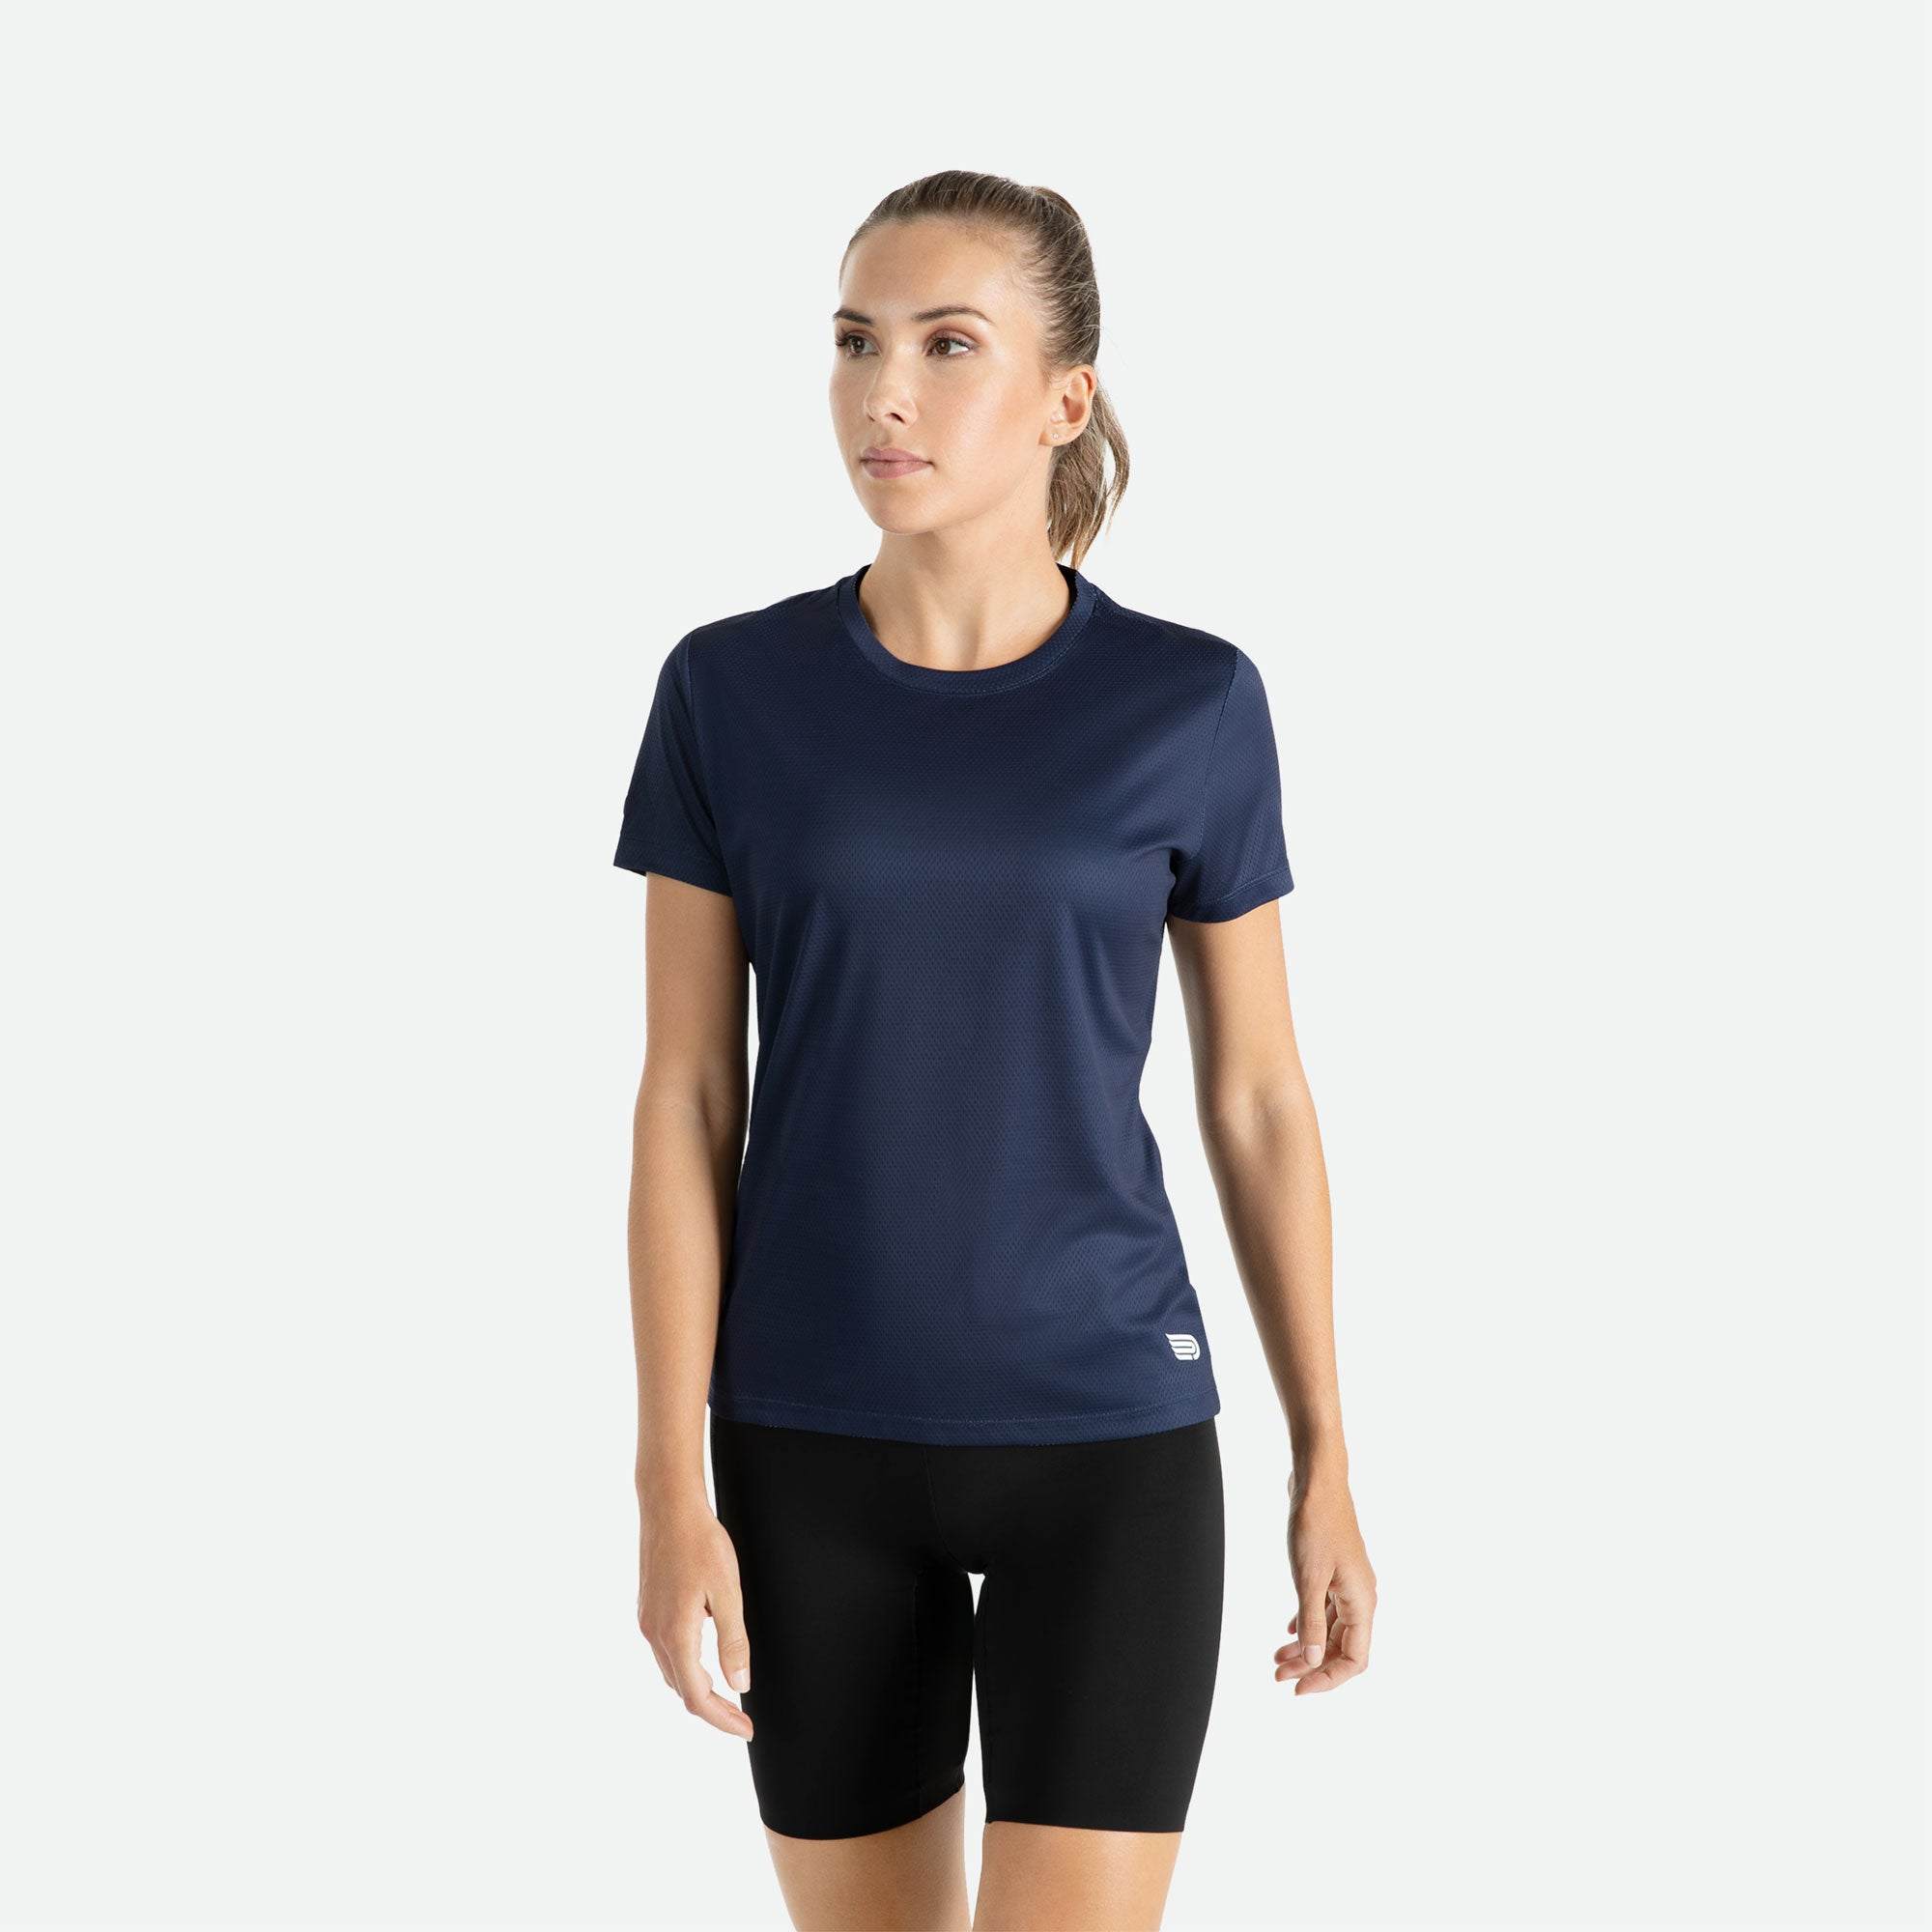 Our Pressio women's navy Hāpai short sleeve t-shirt features EcoTECH MF fabric which has dual filament recycled polyester yarns from Unifi for superior moisture control to keep you dry.